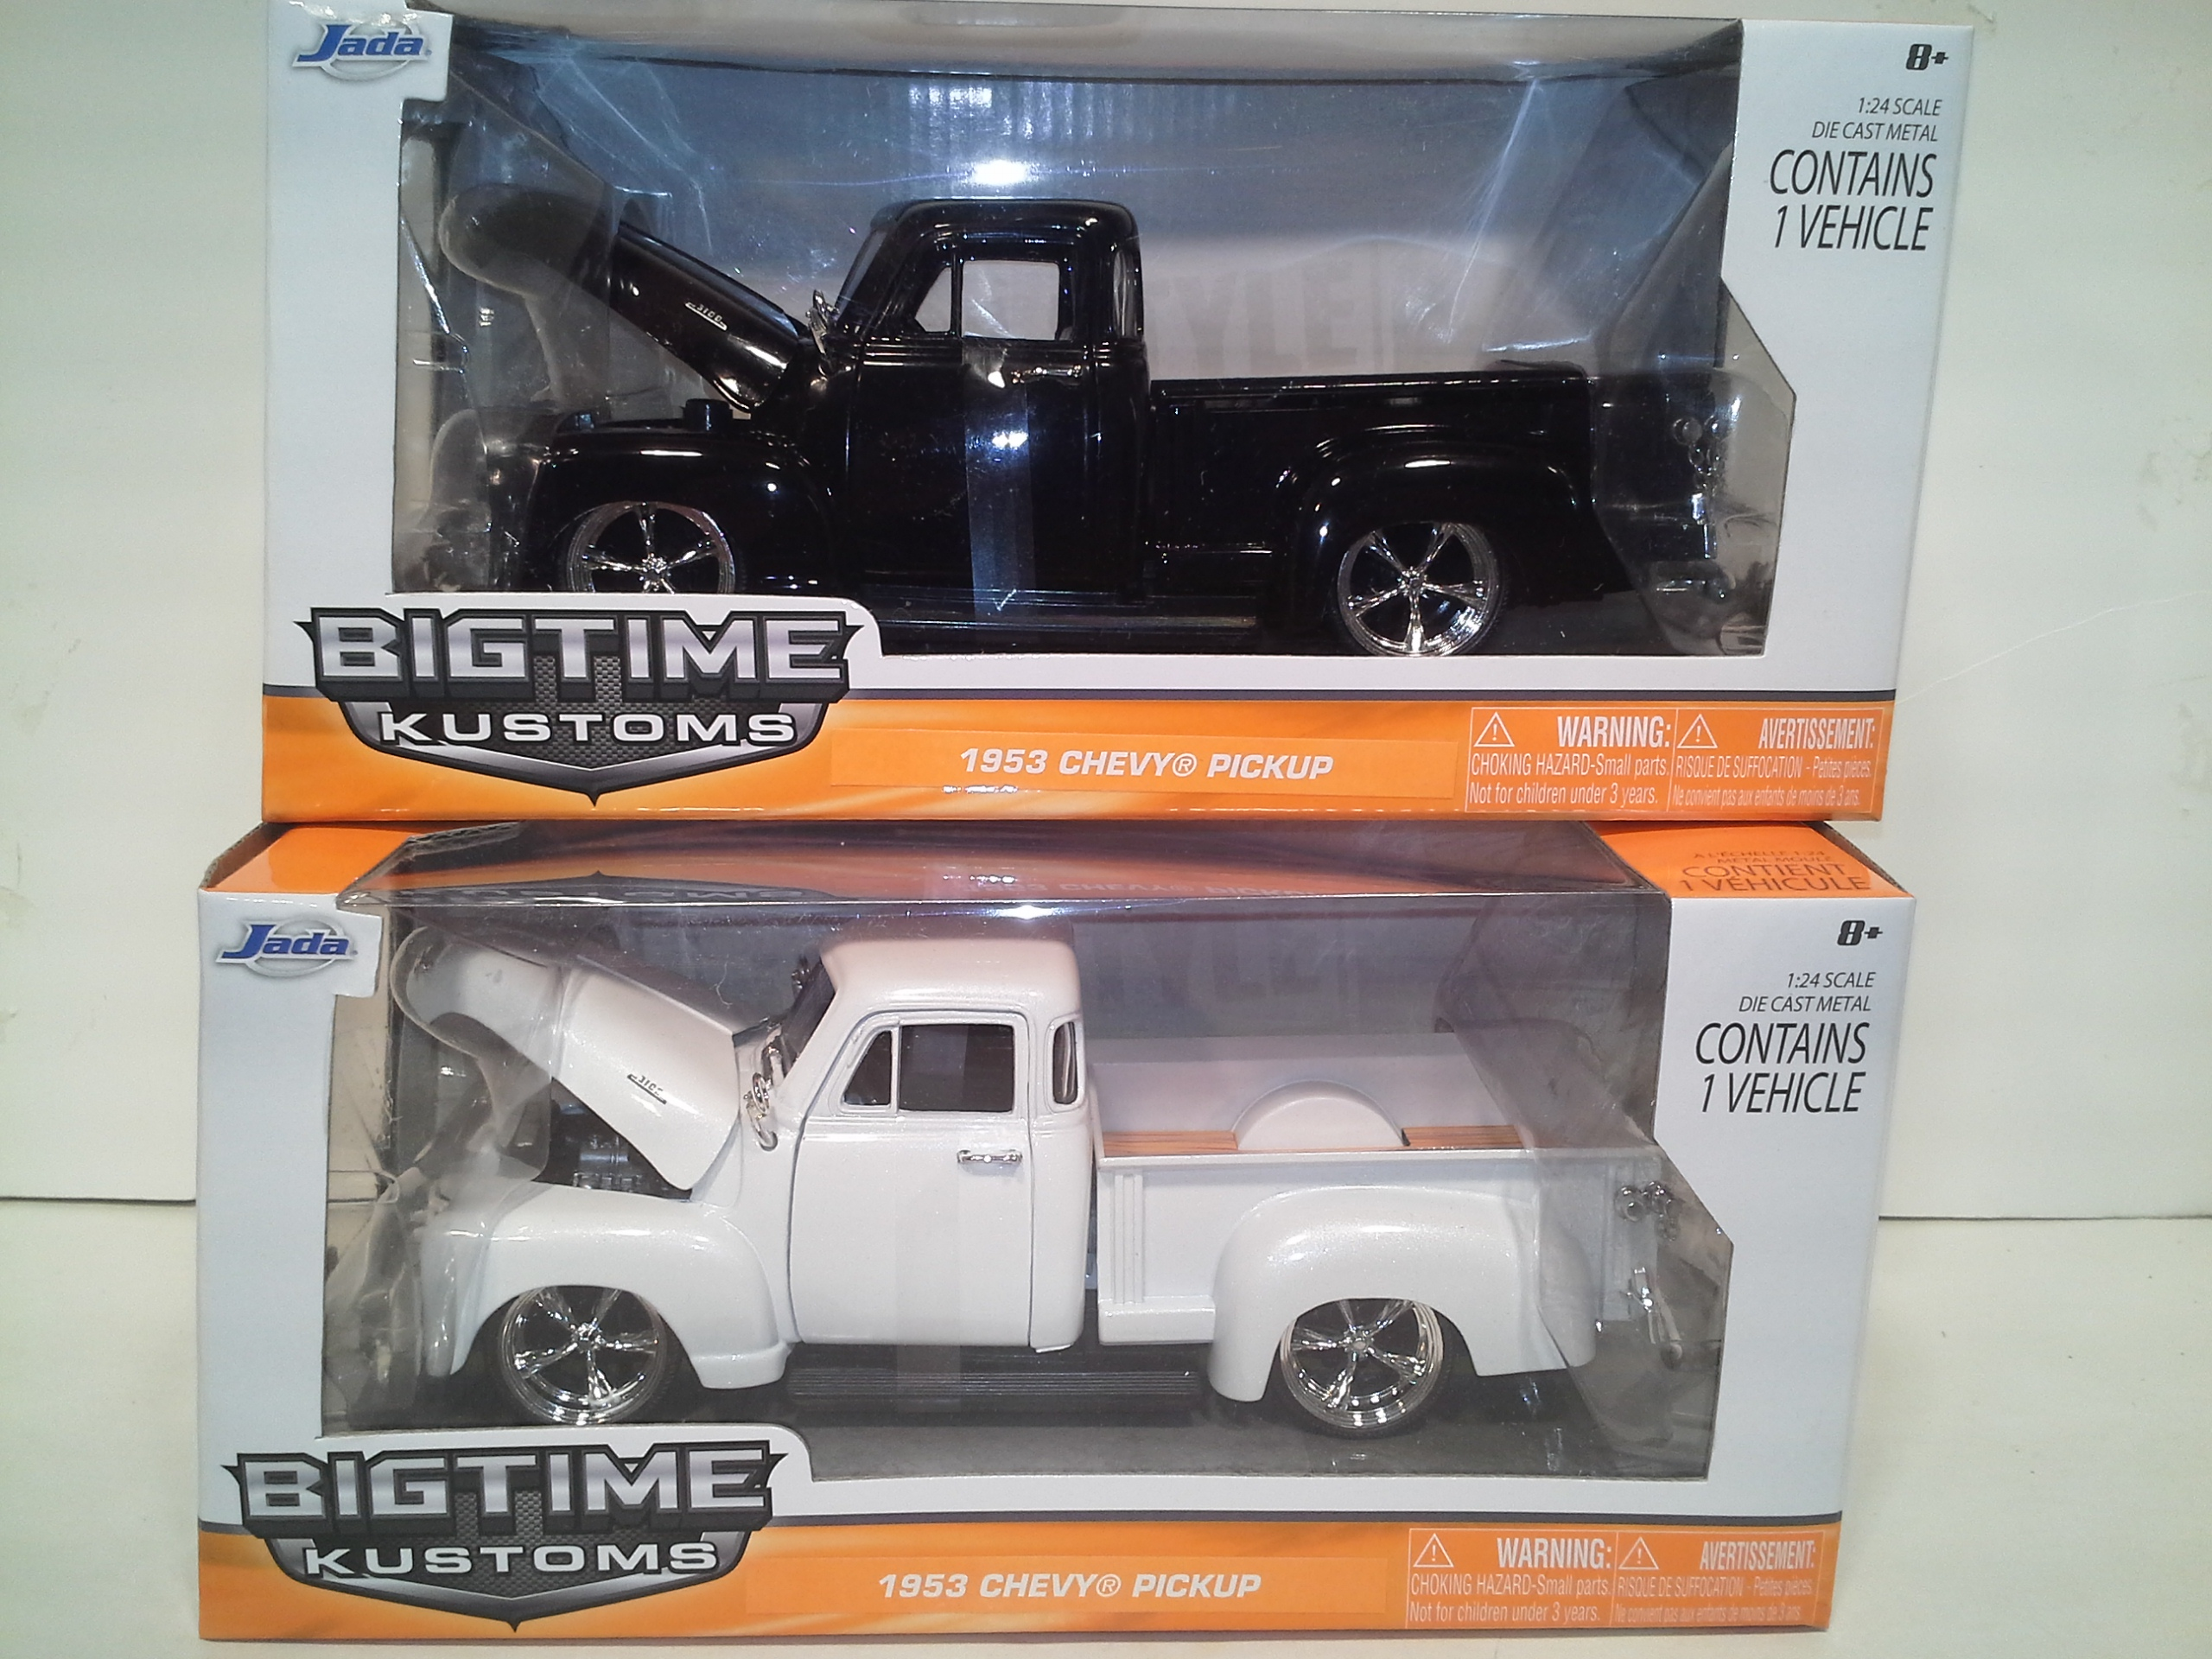 World Famous Classic Toys Chevrolet Die Cast Chevy Pickup Trucks 1968 Truck For Sale 1953